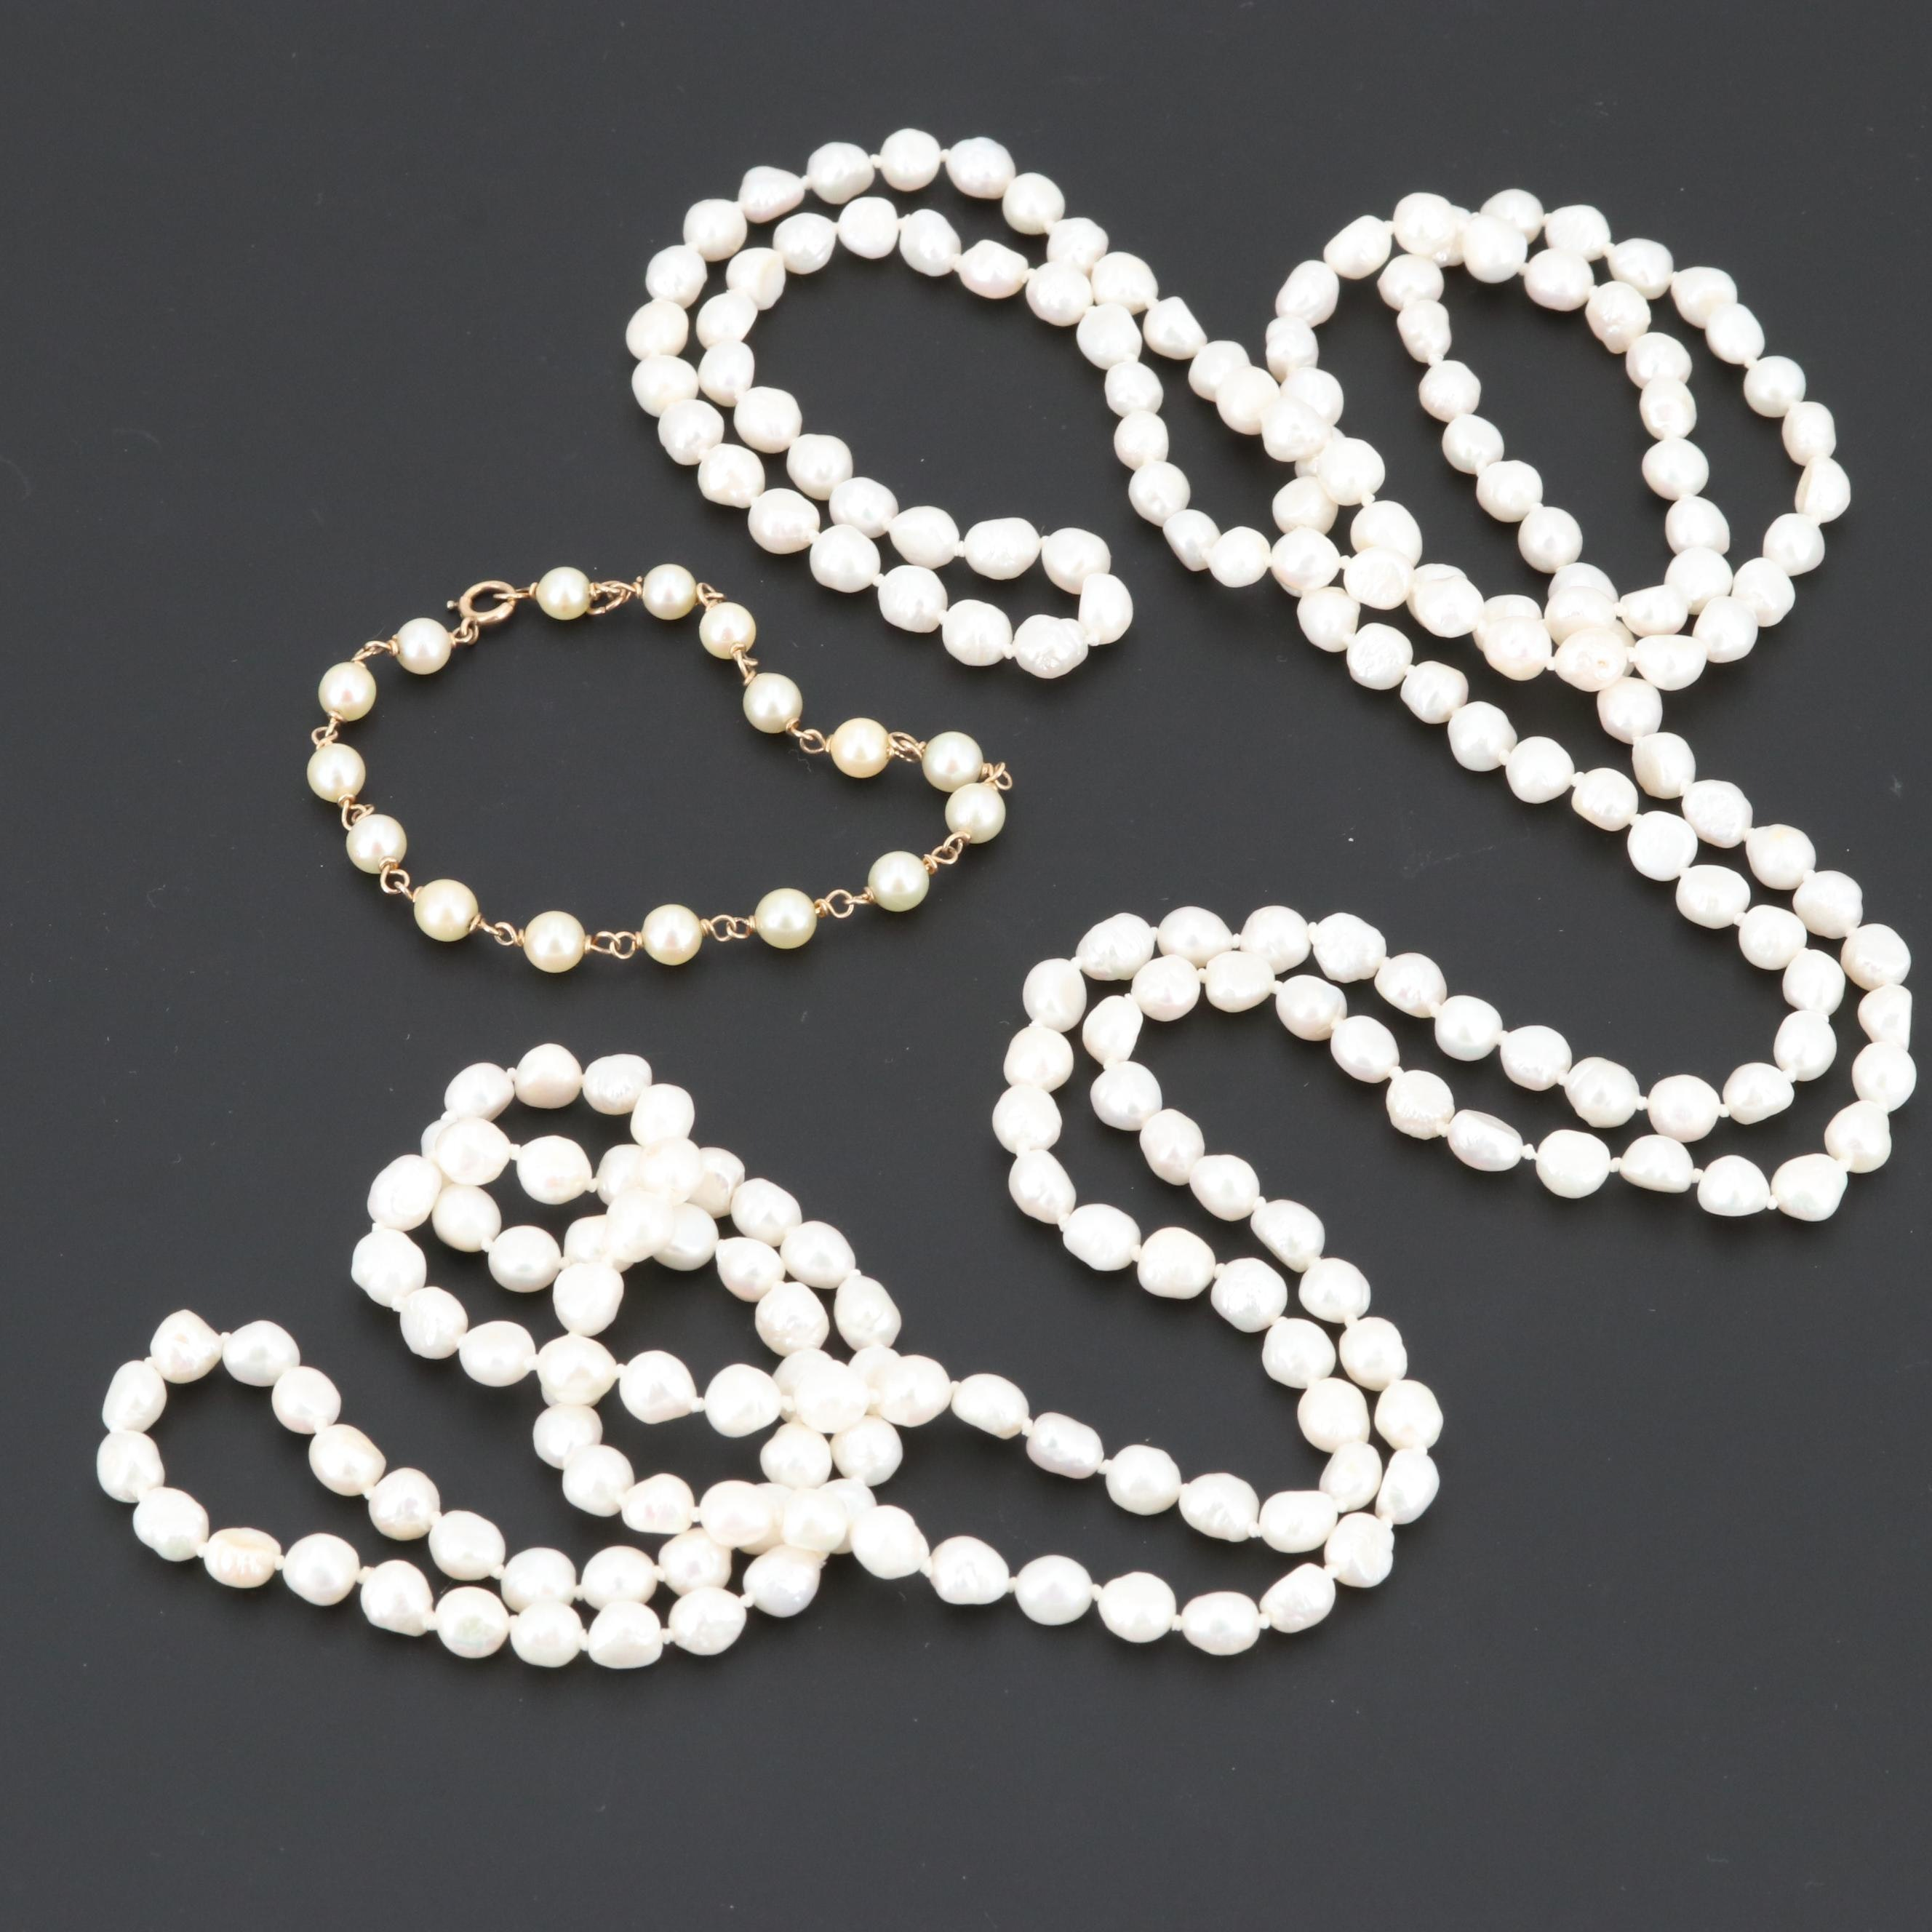 14K Yellow Gold Cultured Pearl Bracelet and Endless Strand Necklace